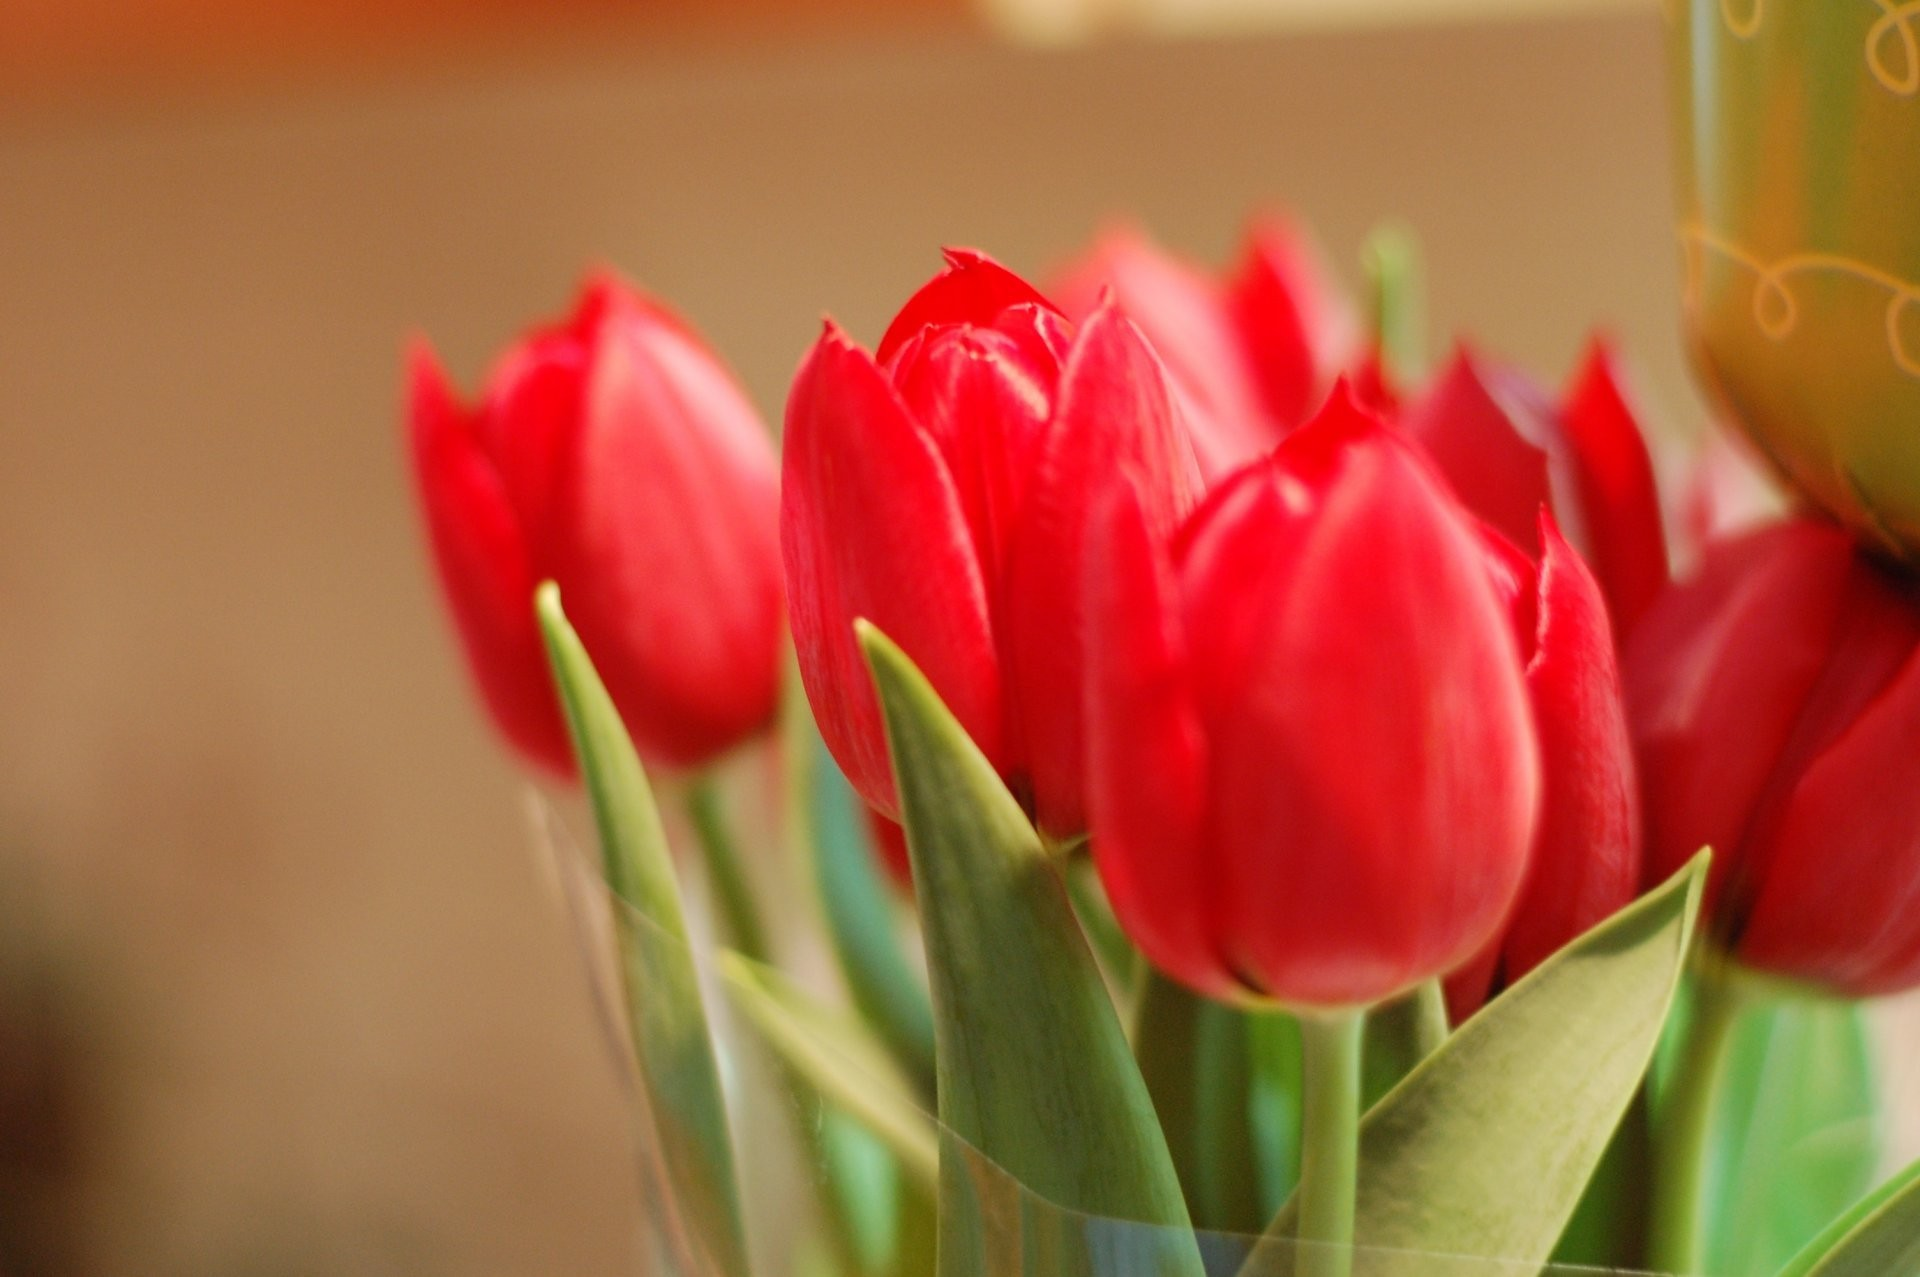 1920x1277 flower flowers tulips red petals bud buds close up leaves leaves background  wallpaper widescreen full screen